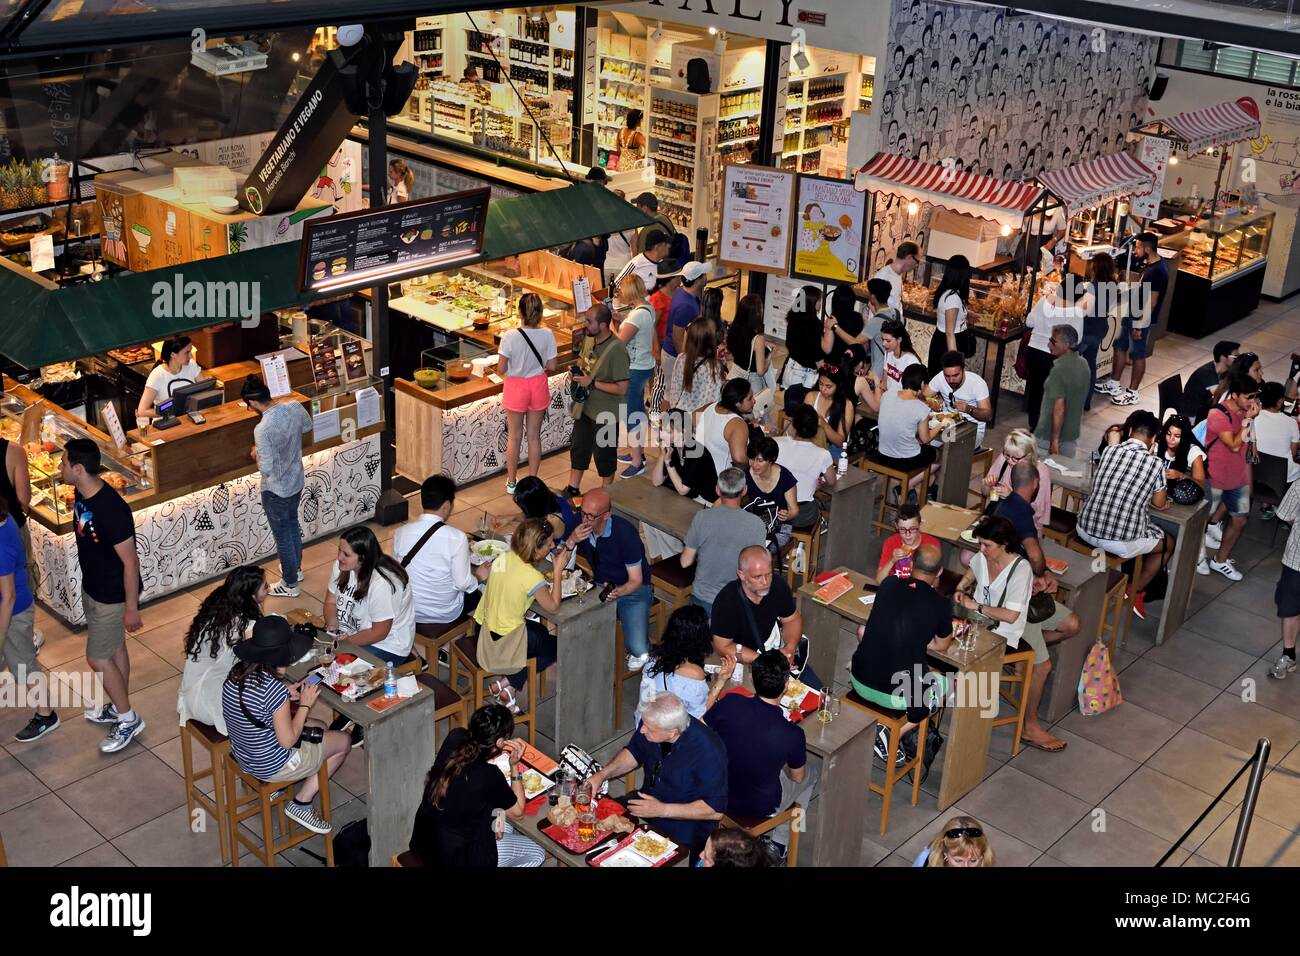 bar & crowded seating area of food court The Mercato Centrale or Mercato di San Lorenzo - Central Food Market  Florence - Tuscany, Italy - Italy Stock Photo